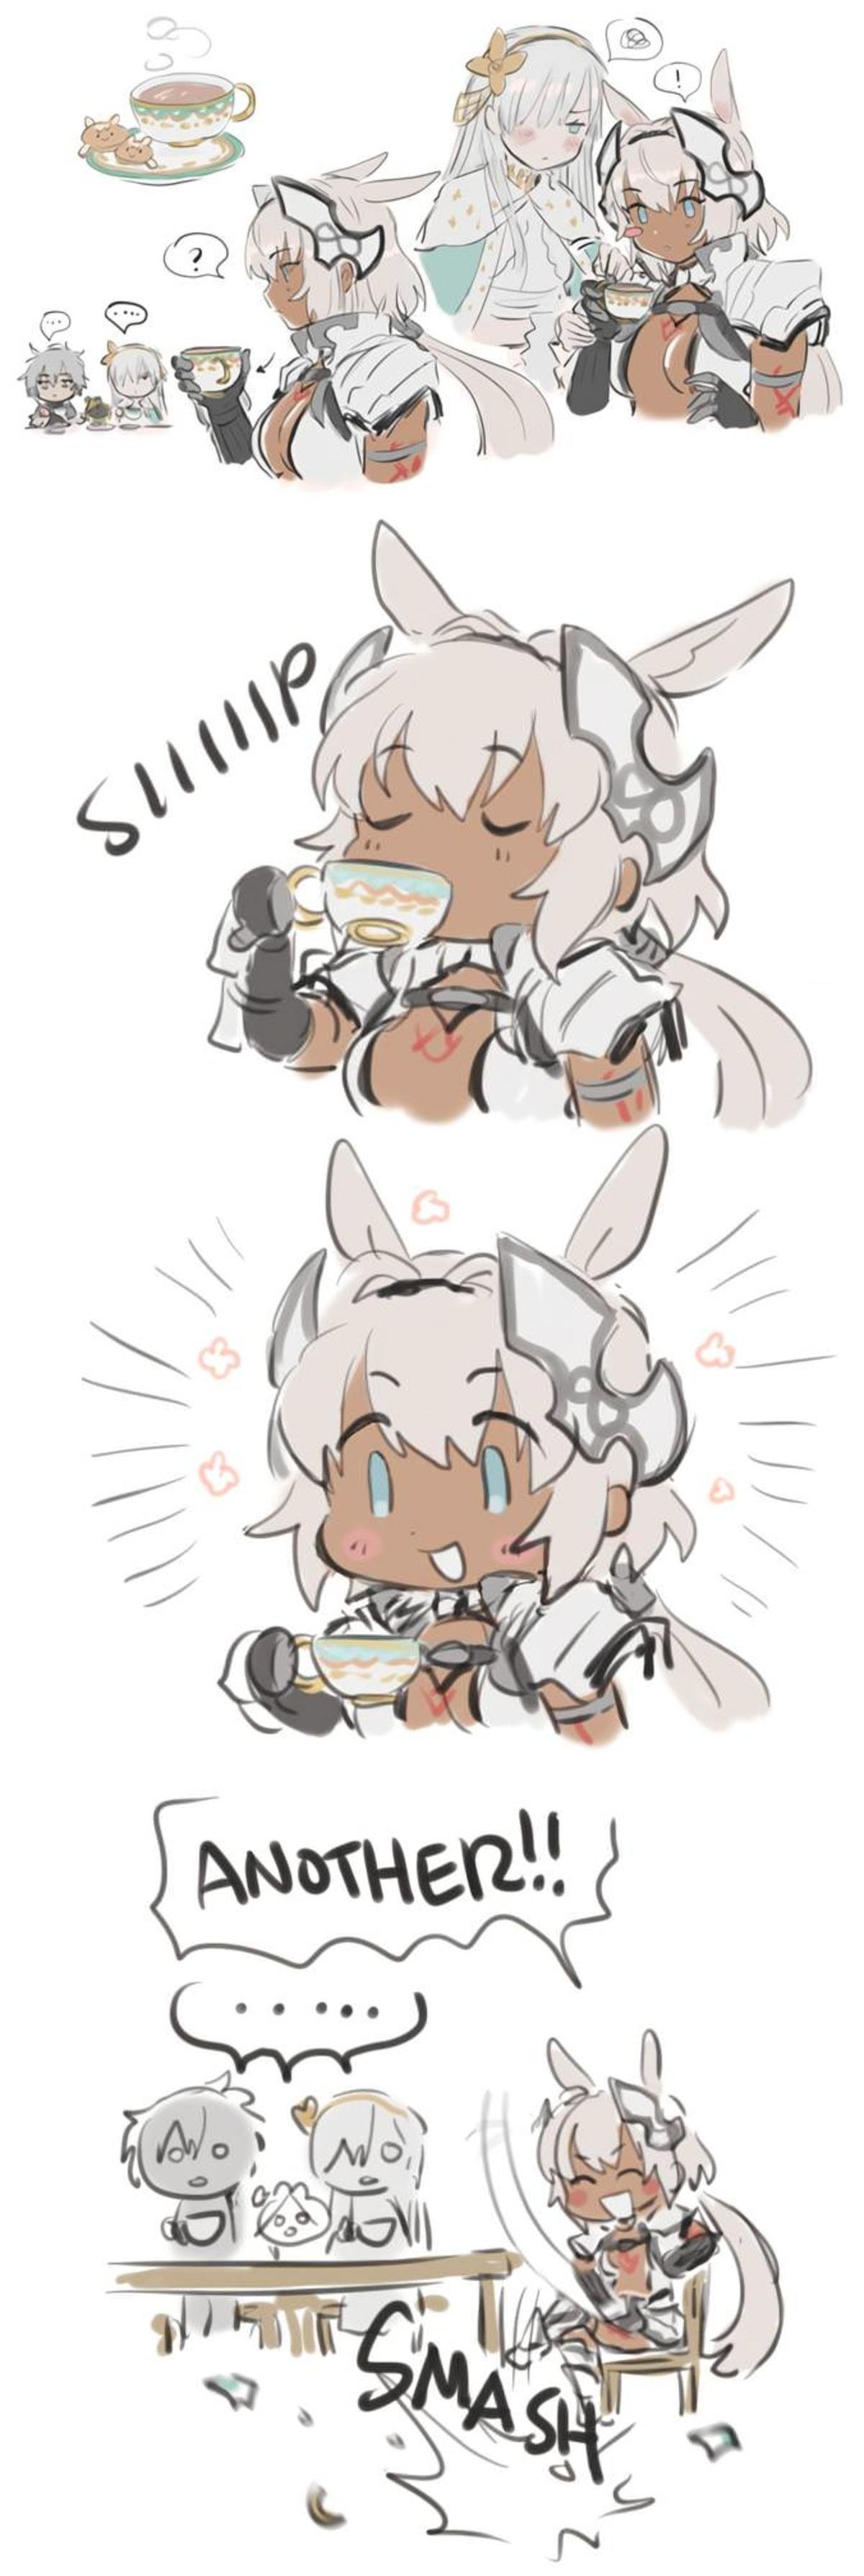 Caenis Drinking Tea. Source drinkingtea/ join list: Fate (421 subs)Mention History join list: